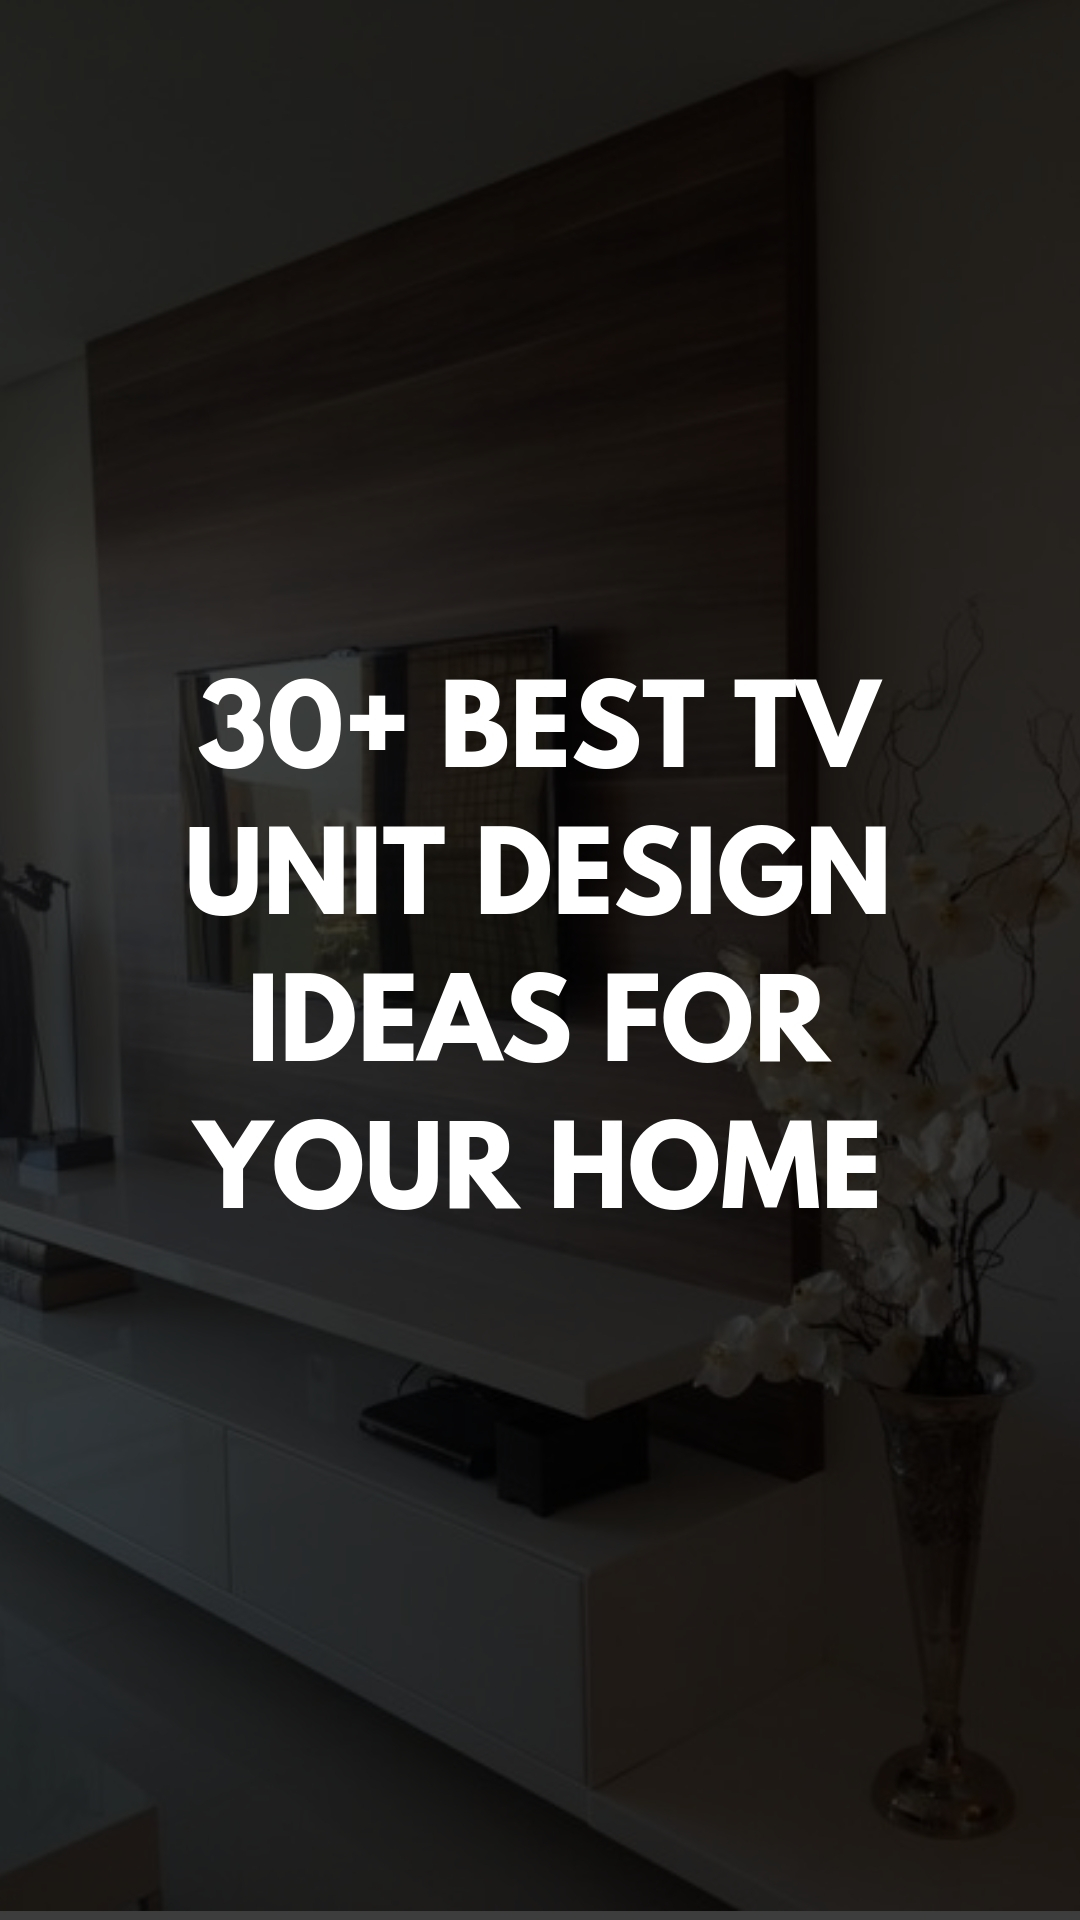 TV UNIT DESIGNS IDEAS FOR YOUR HOME (1).jpg